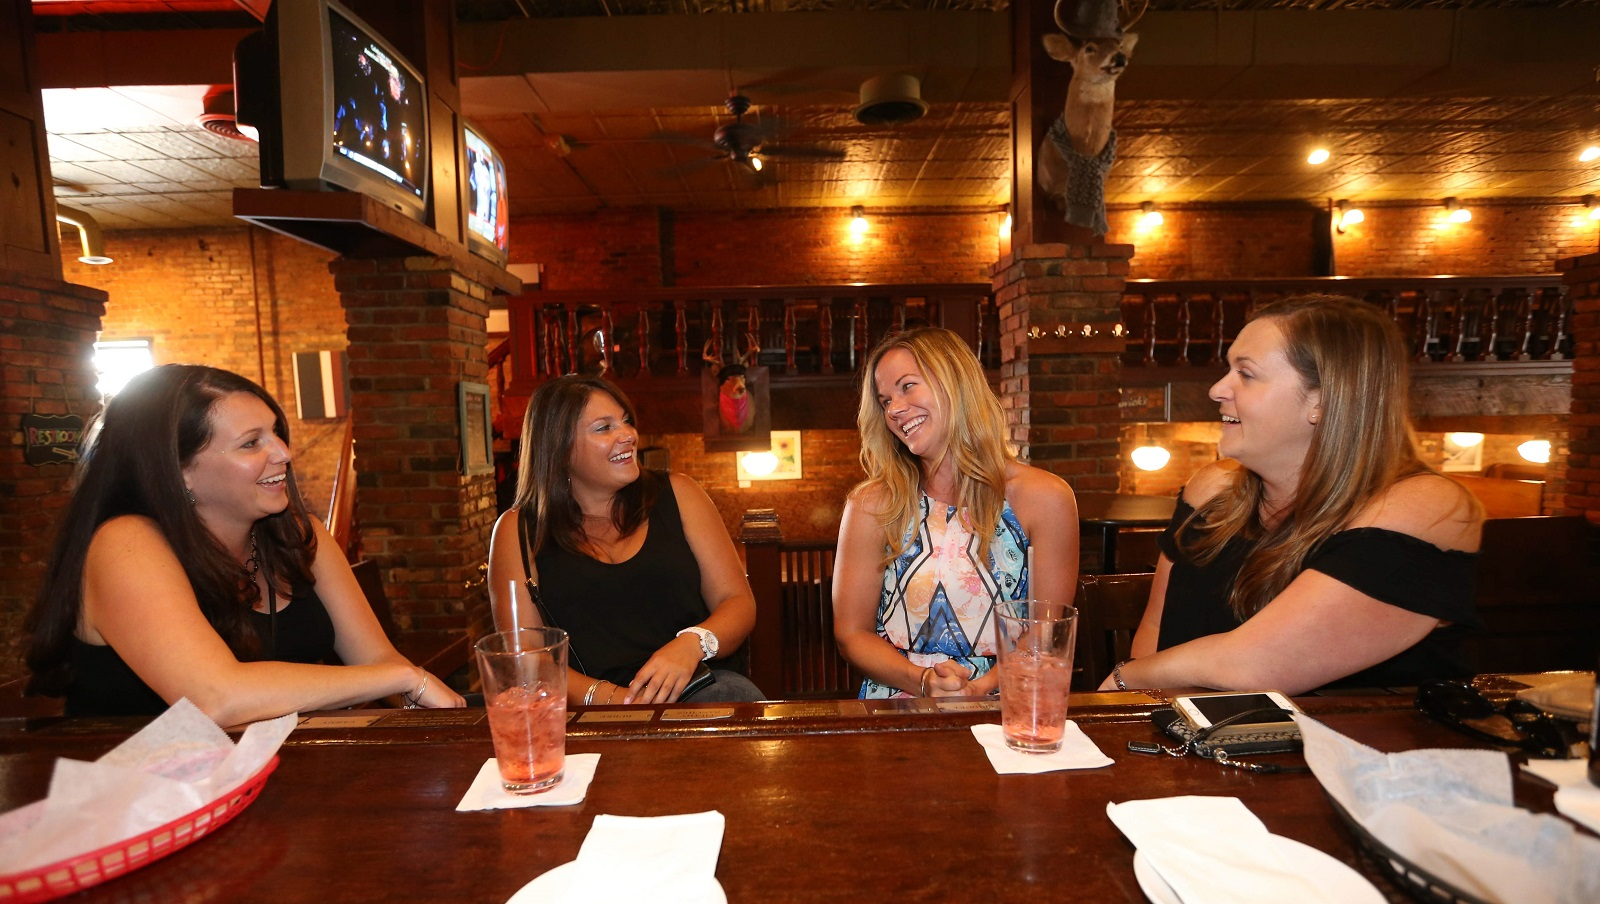 Christina Scovazzo, left, Nicole Rossney, Misty Hofert and Kiera Campbell hang out during happy hour at Century Grill in downtown Buffalo. (Sharon Cantillon/Buffalo News)